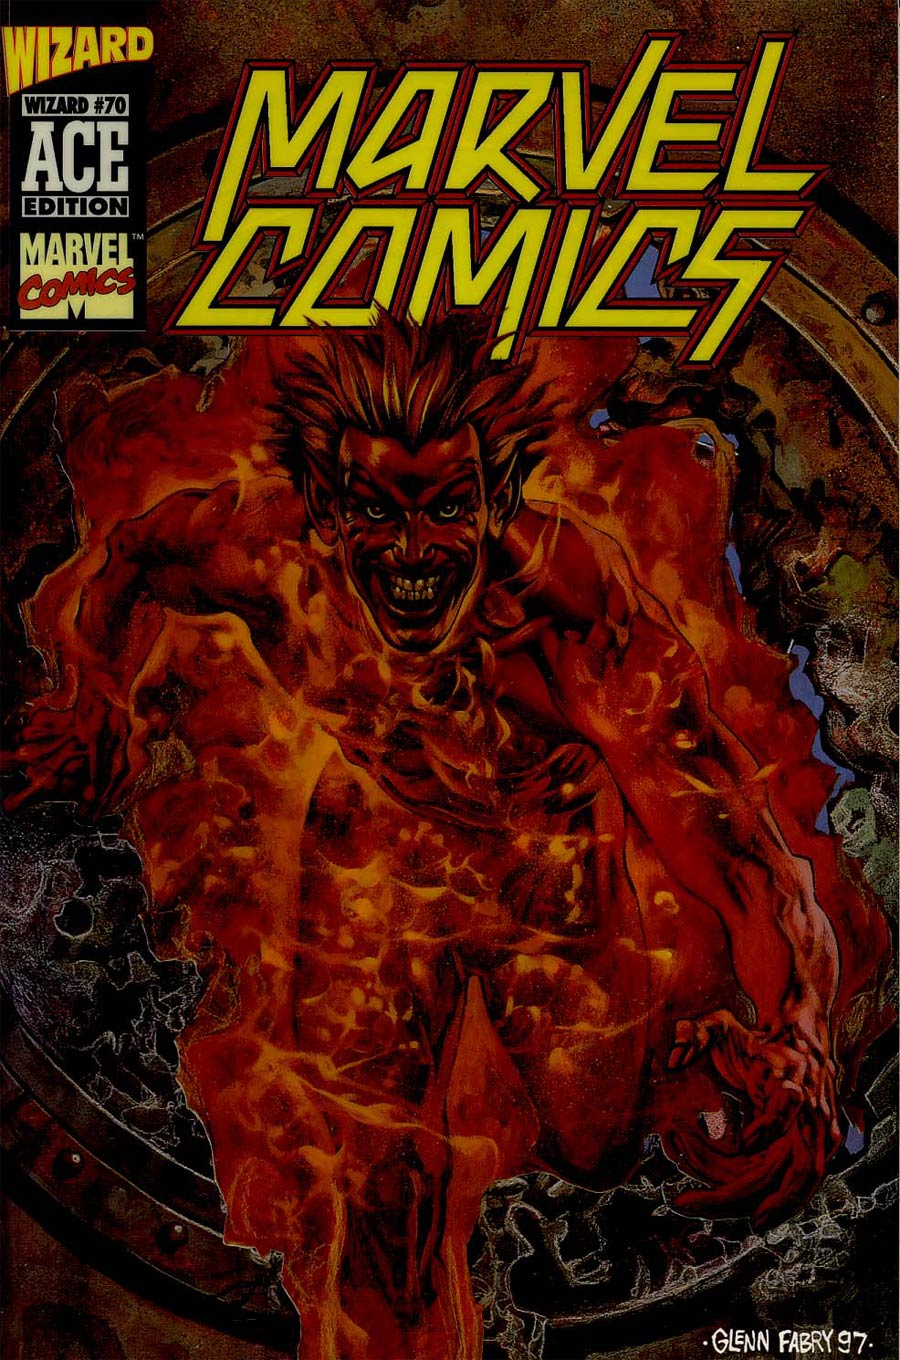 Marvel Comics #1 Cover D Wizard Ace Edition